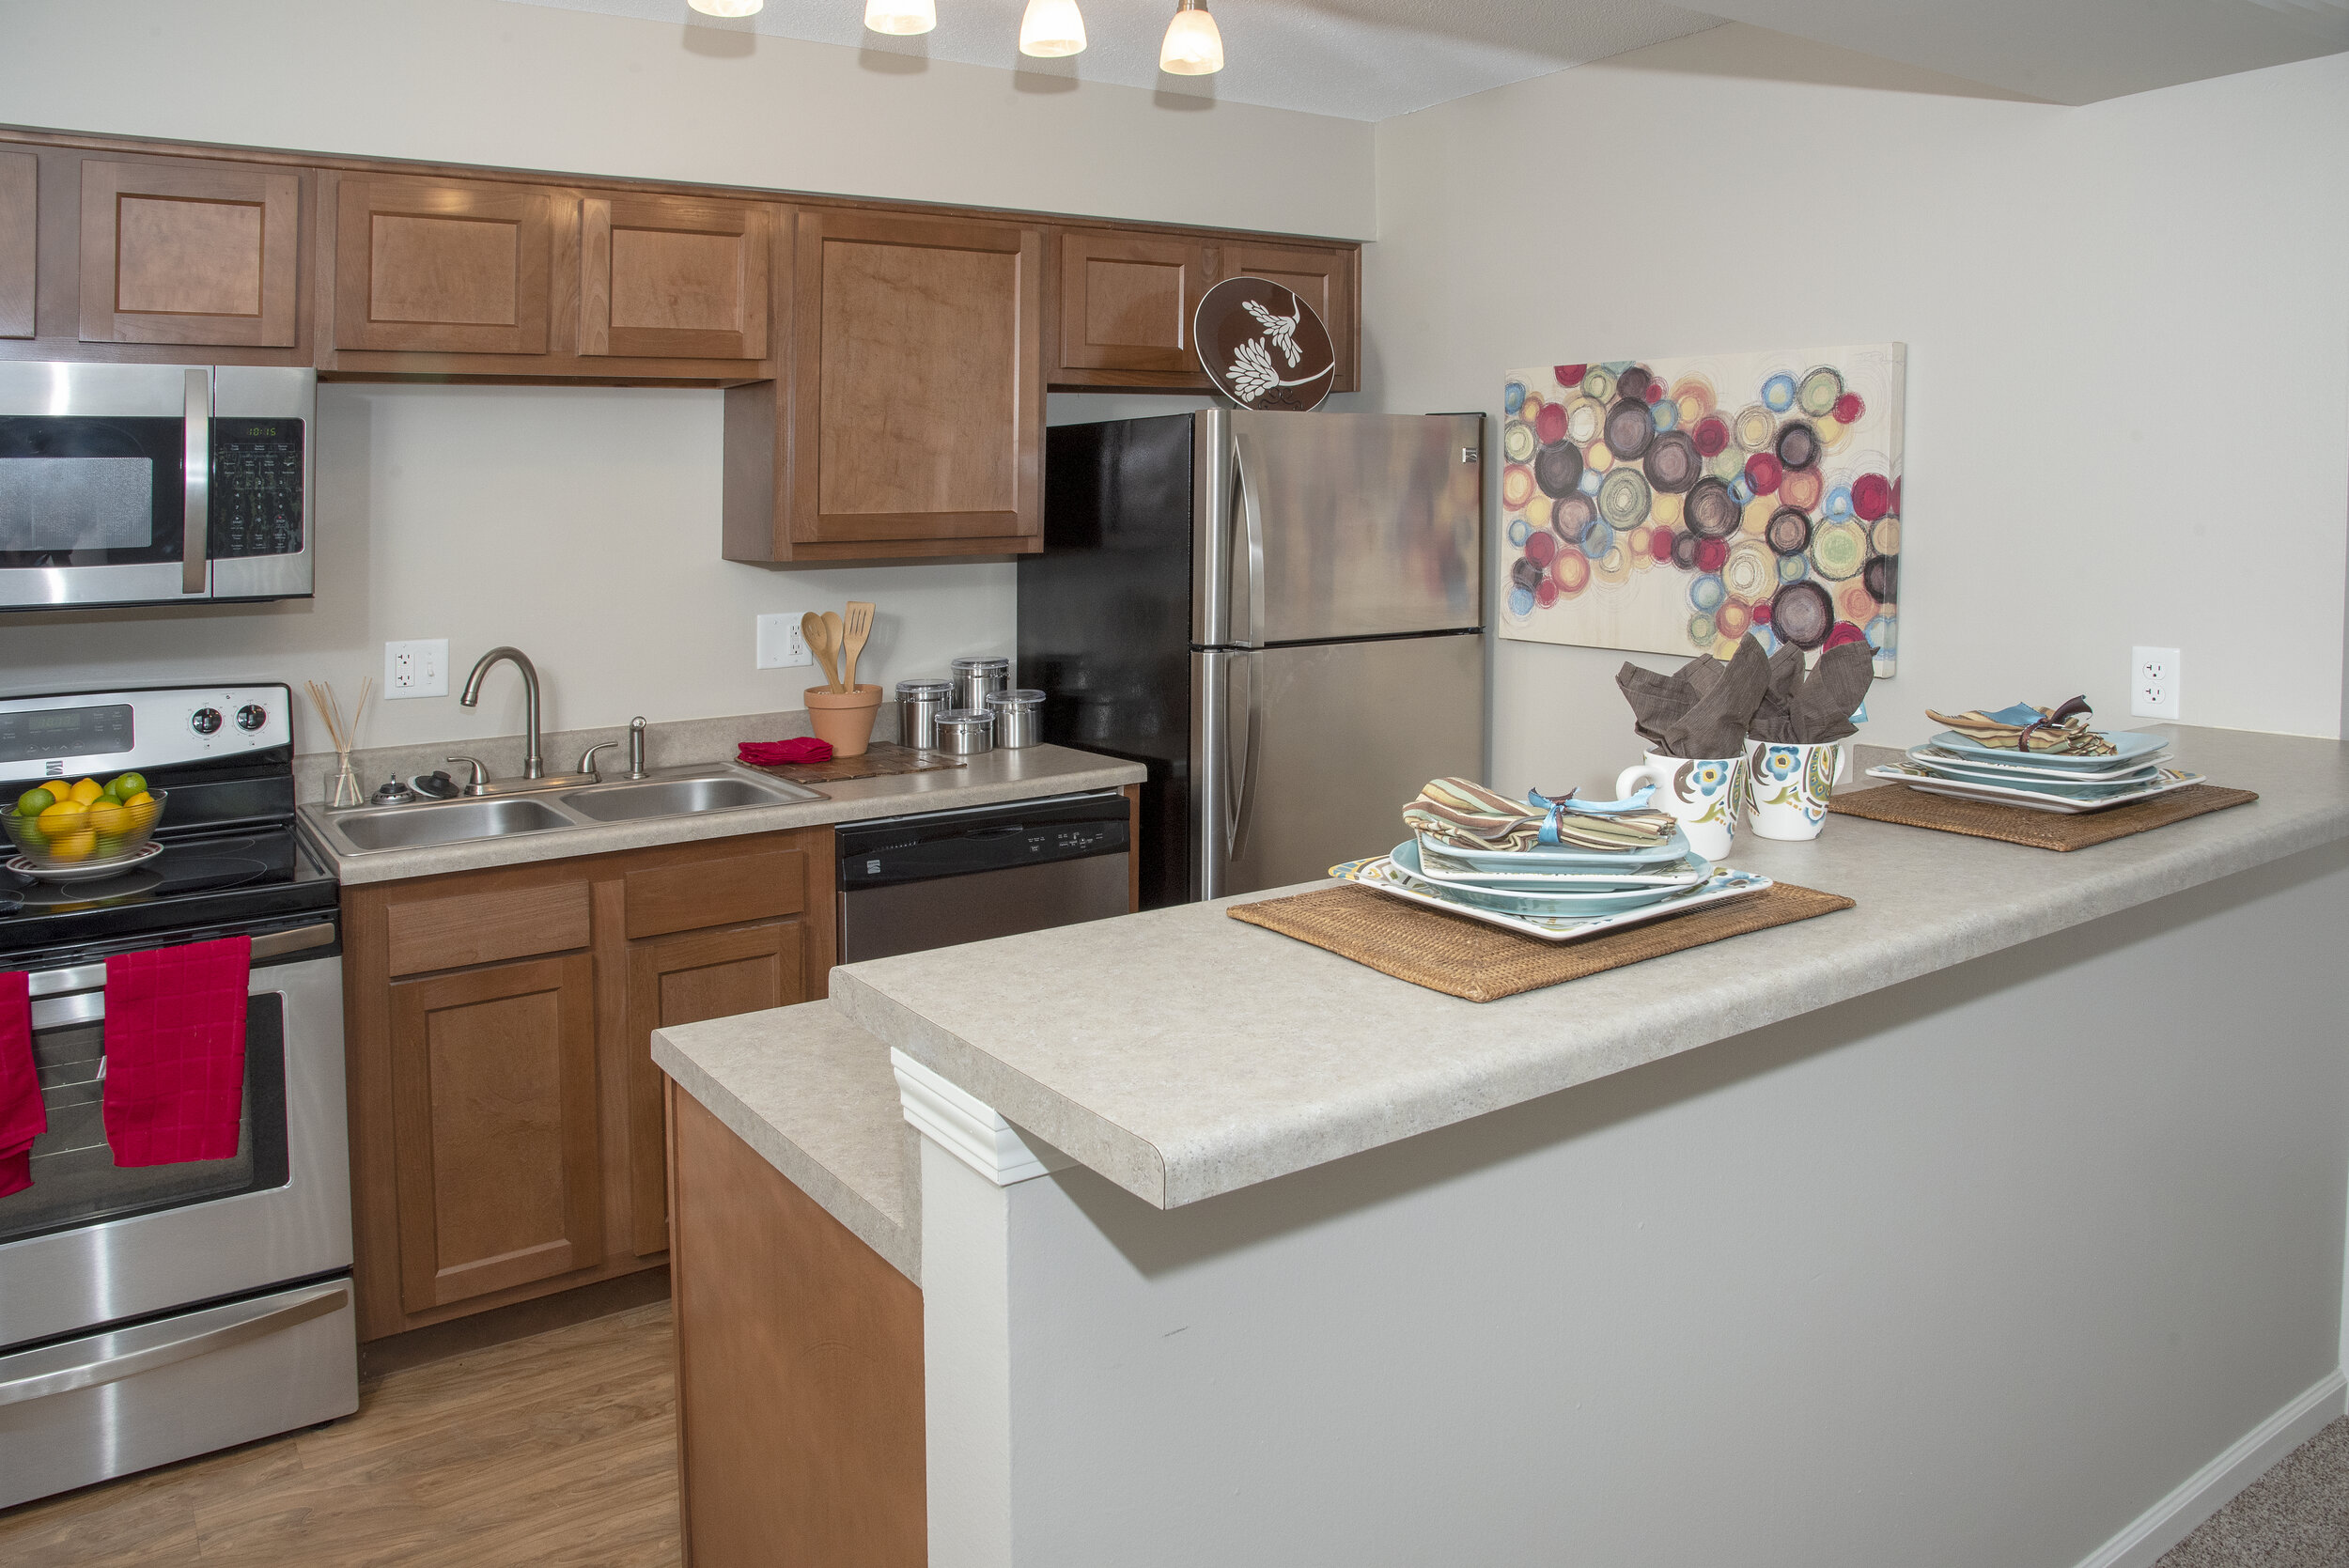 01 Beautifully Remodeled Kitchens with Large Breakfast Bars.jpg